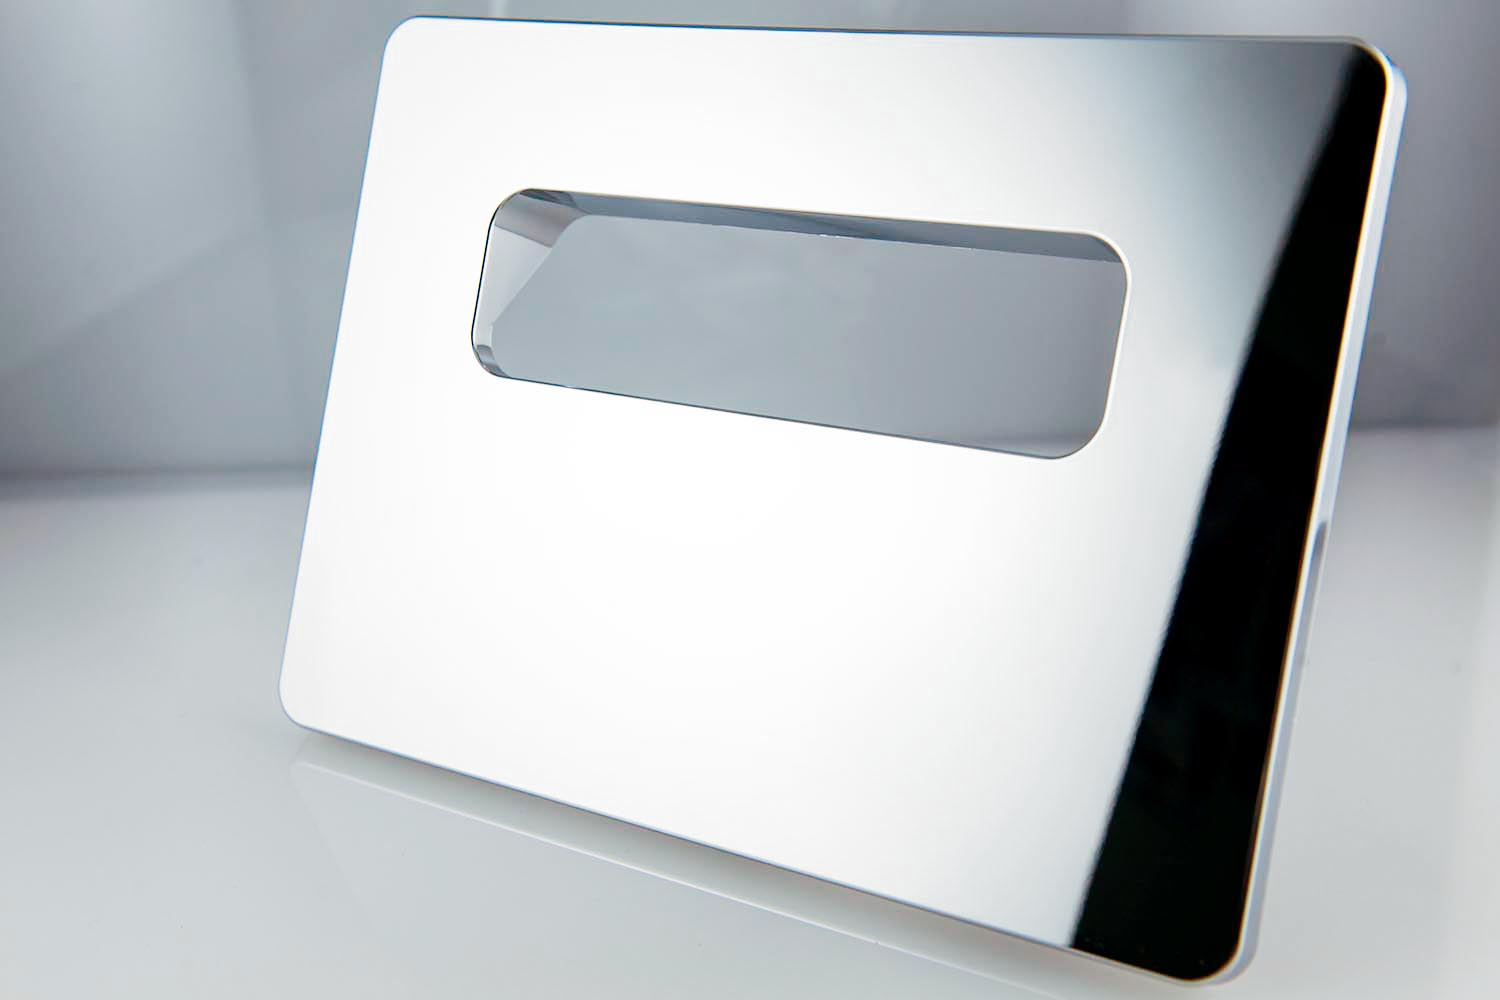 Electro-plated-plastic-finishes-Sanitary-fittings-WC-wall-plate